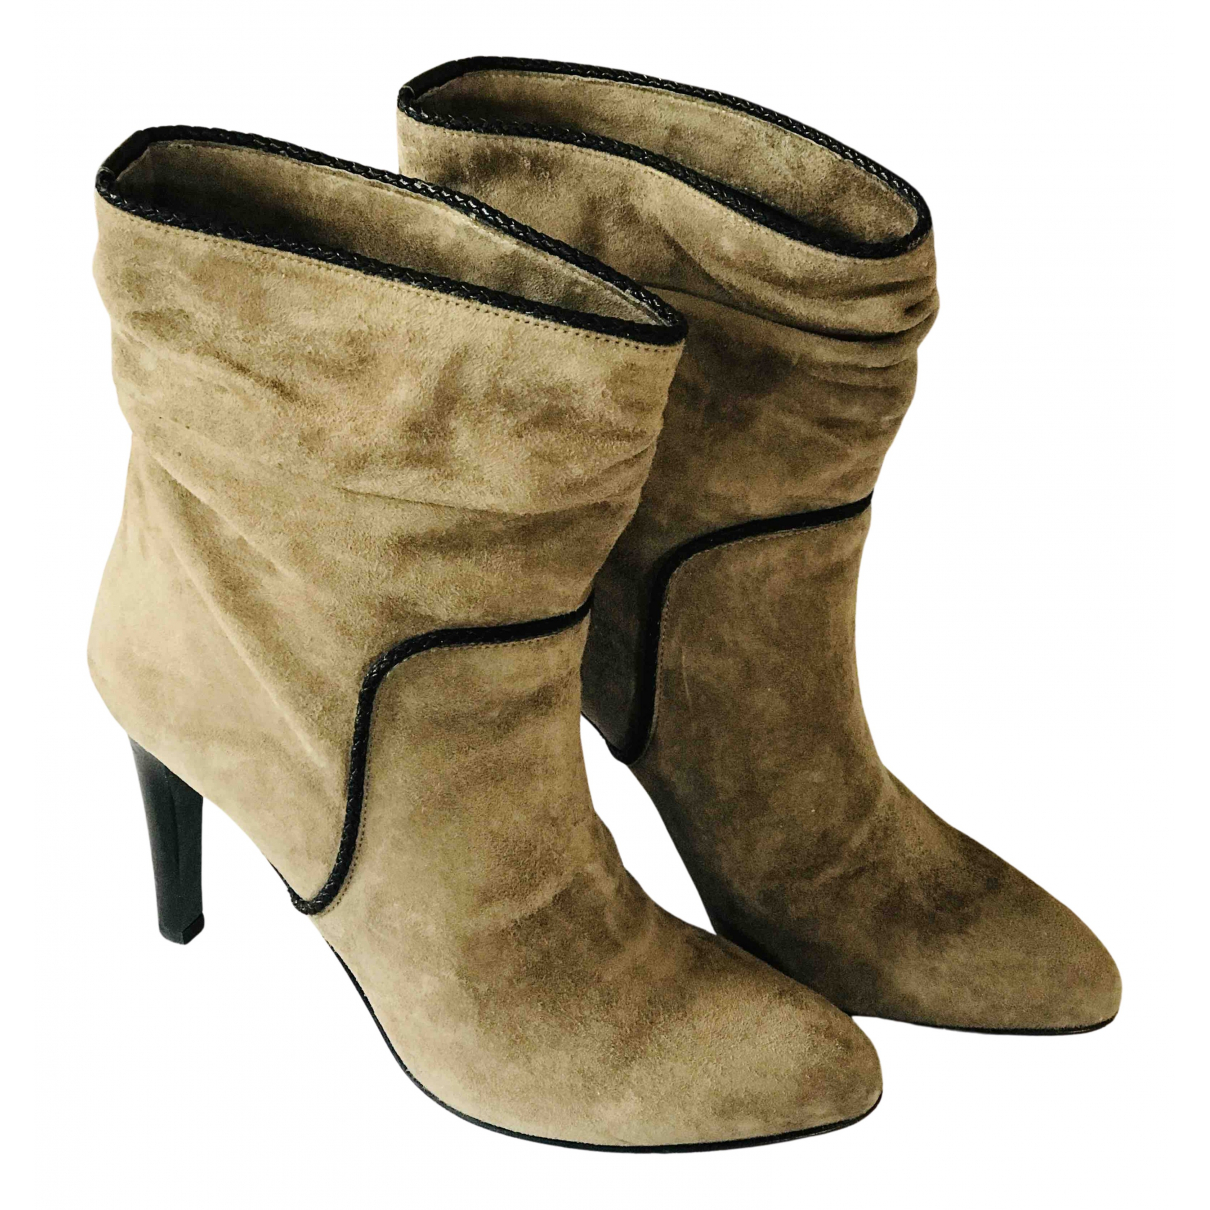 Furla N Brown Suede Ankle boots for Women 37 EU